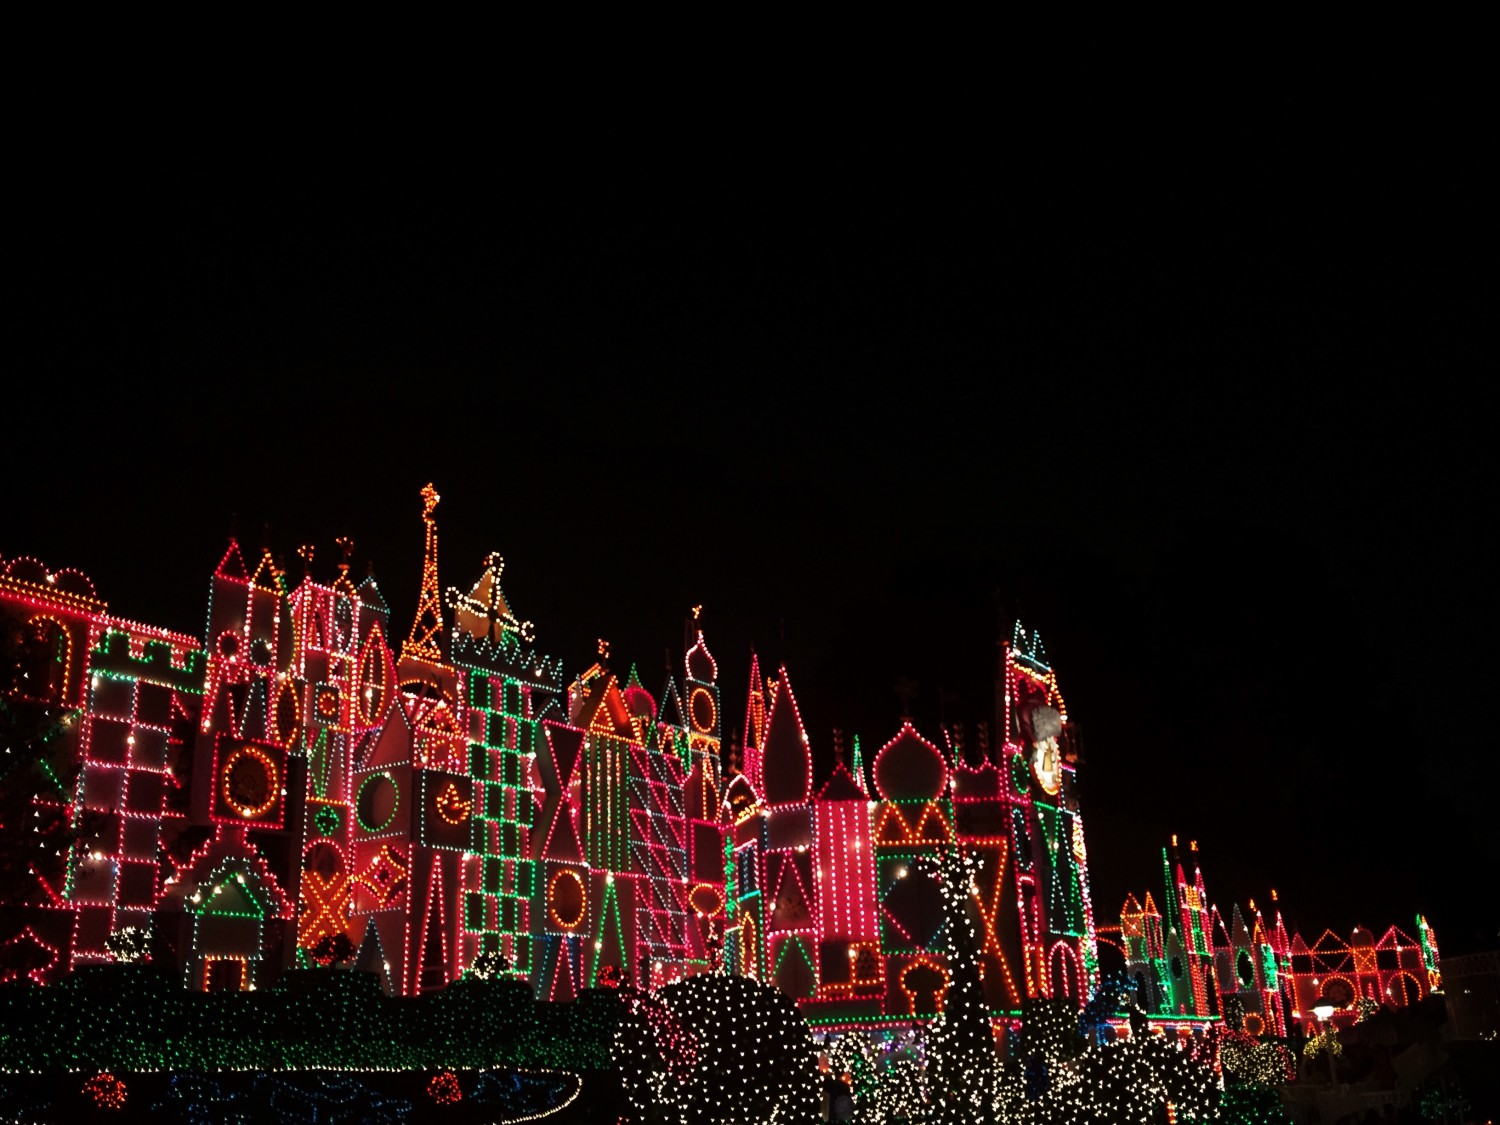 It's A Small World Holiday Lit Up